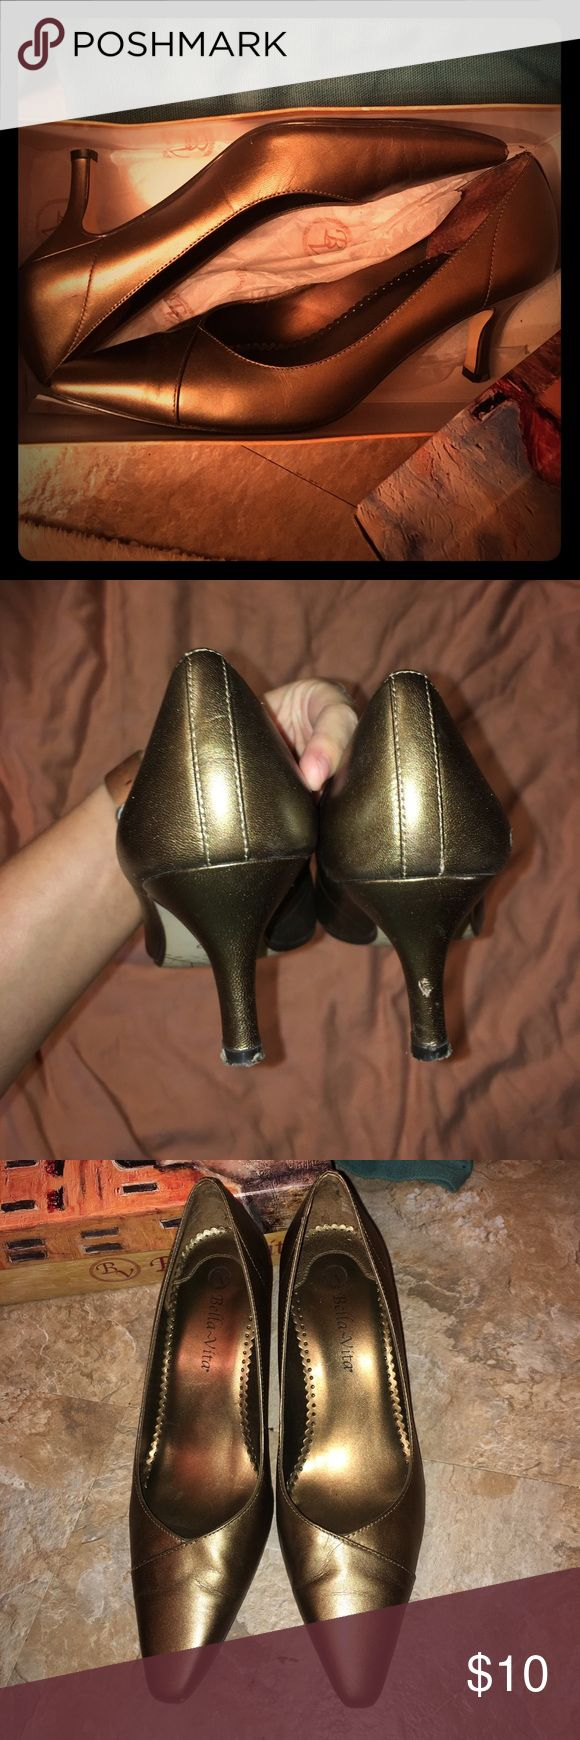 Size 8- bronze Bella vita pumps These were lightly worn and have one small scuff on the back heel. Low but stylish heel Shoes Heels